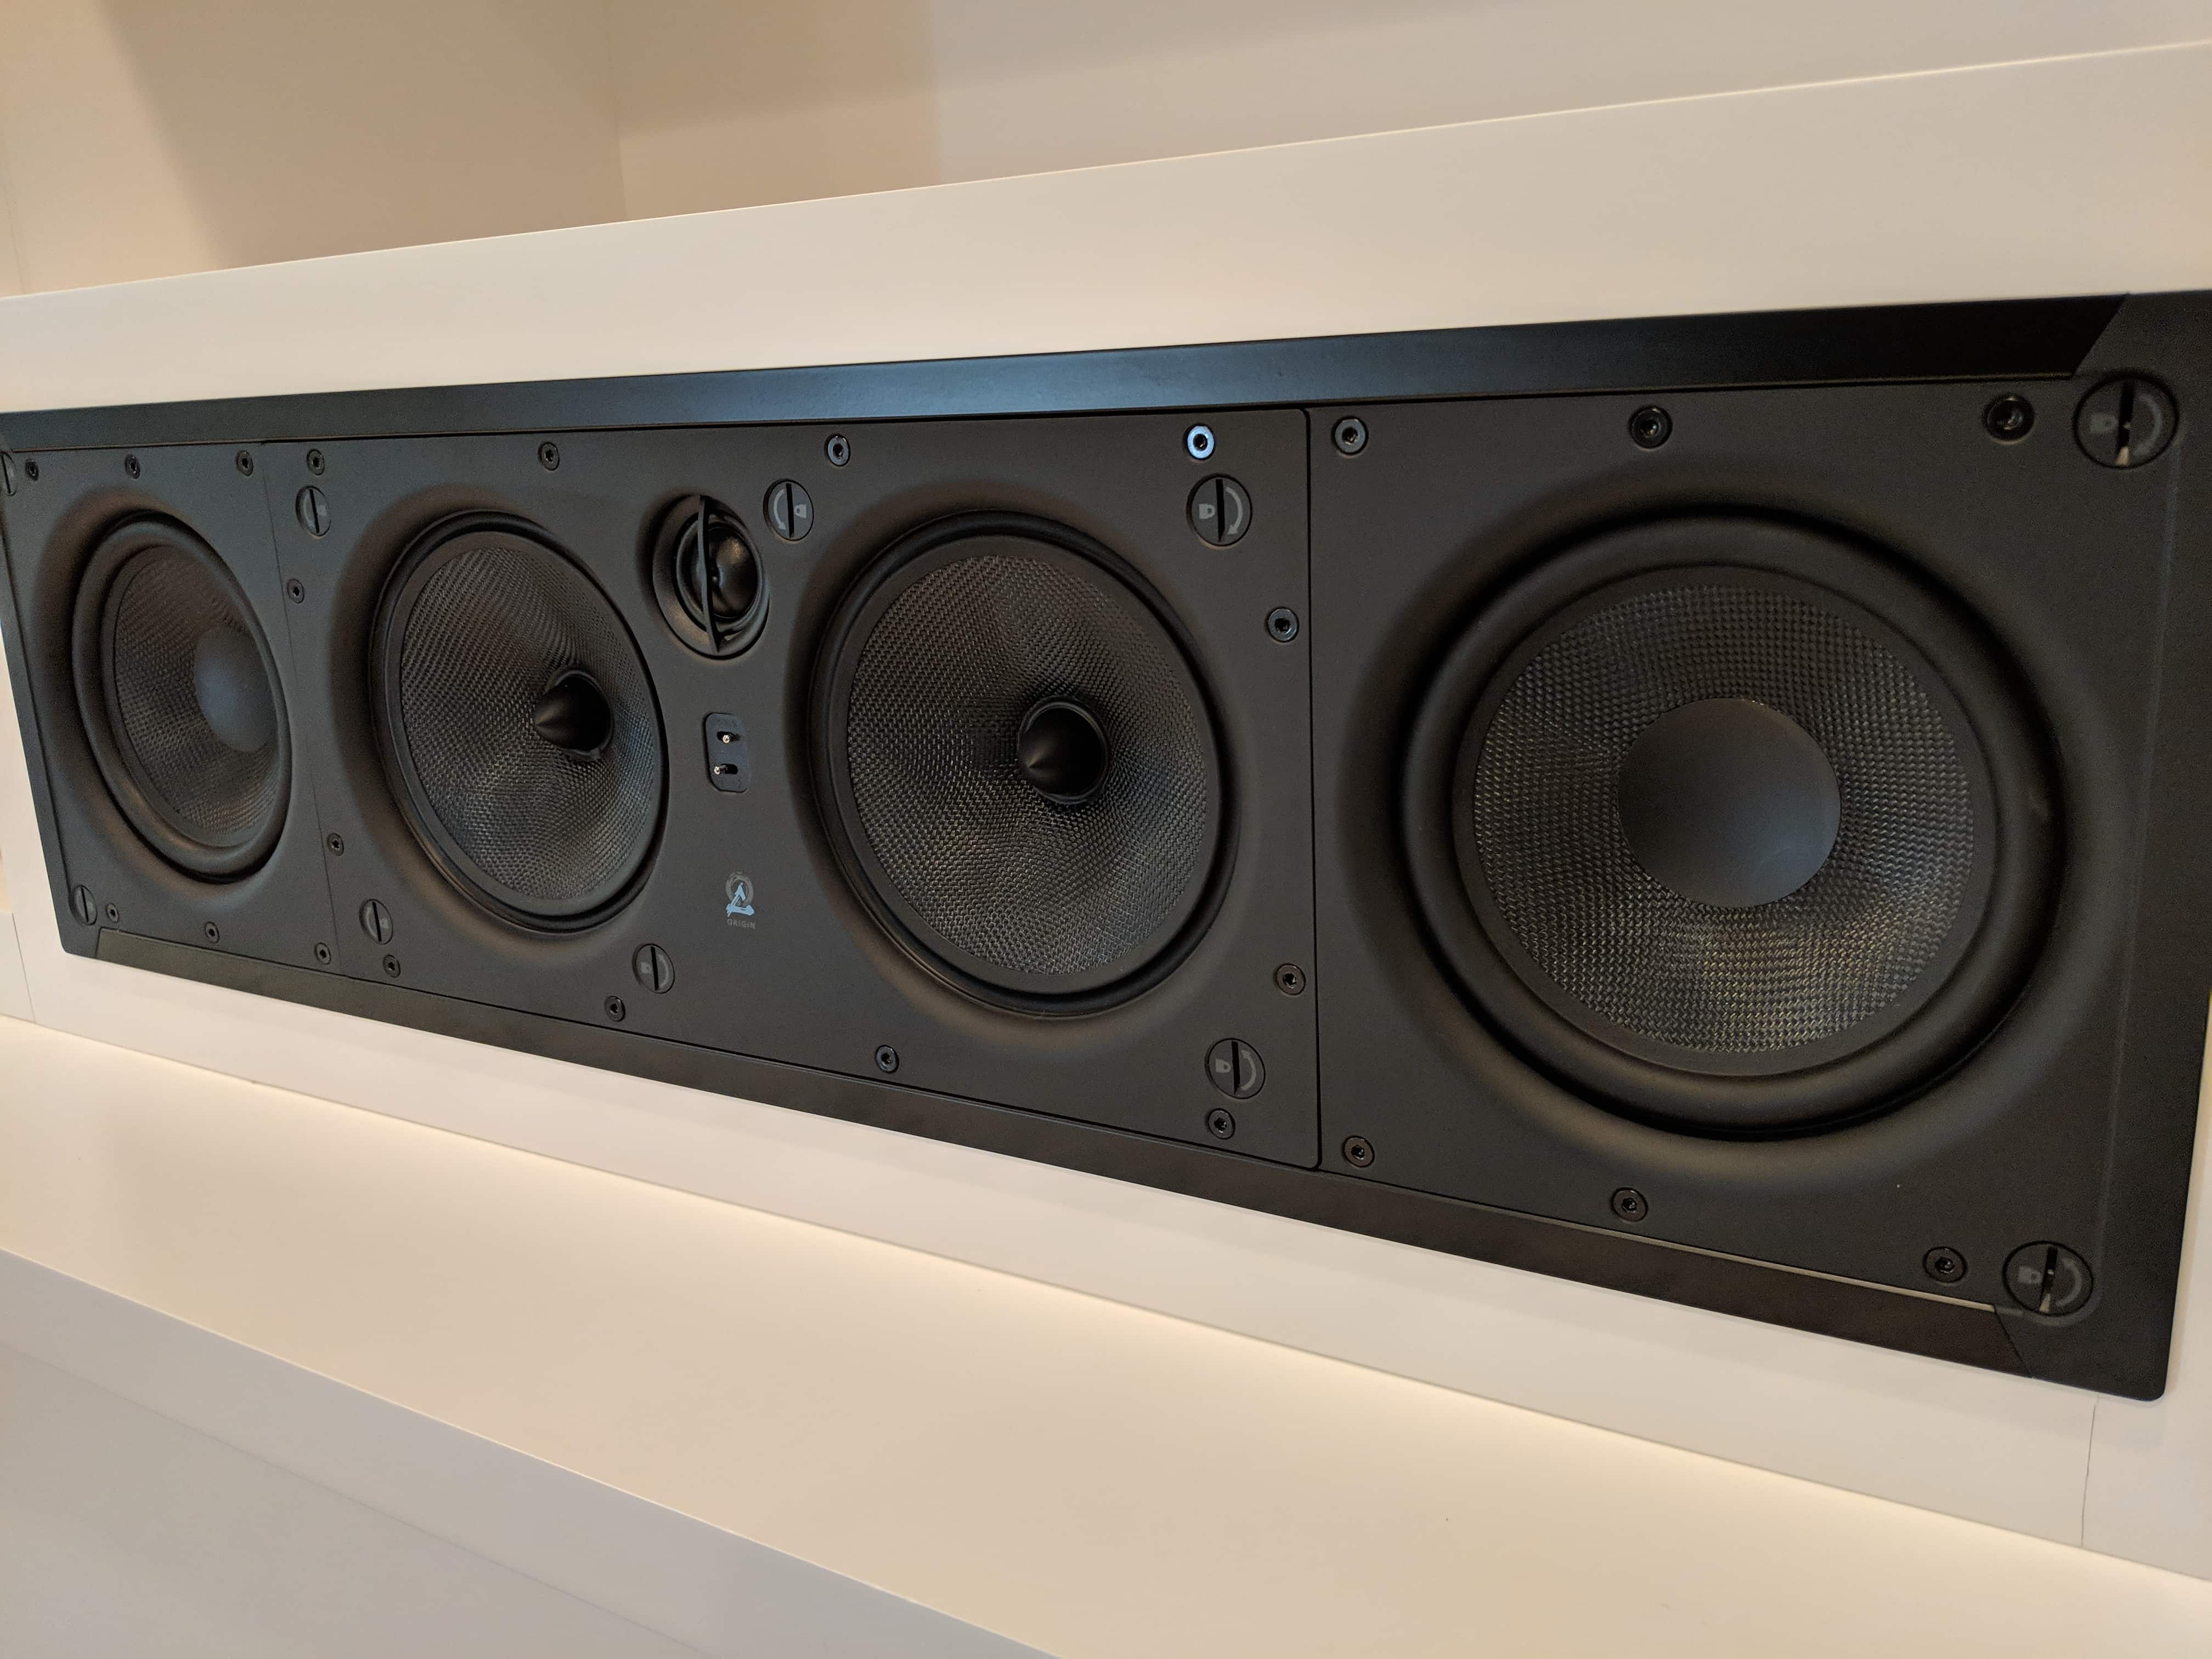 In-wall speakers